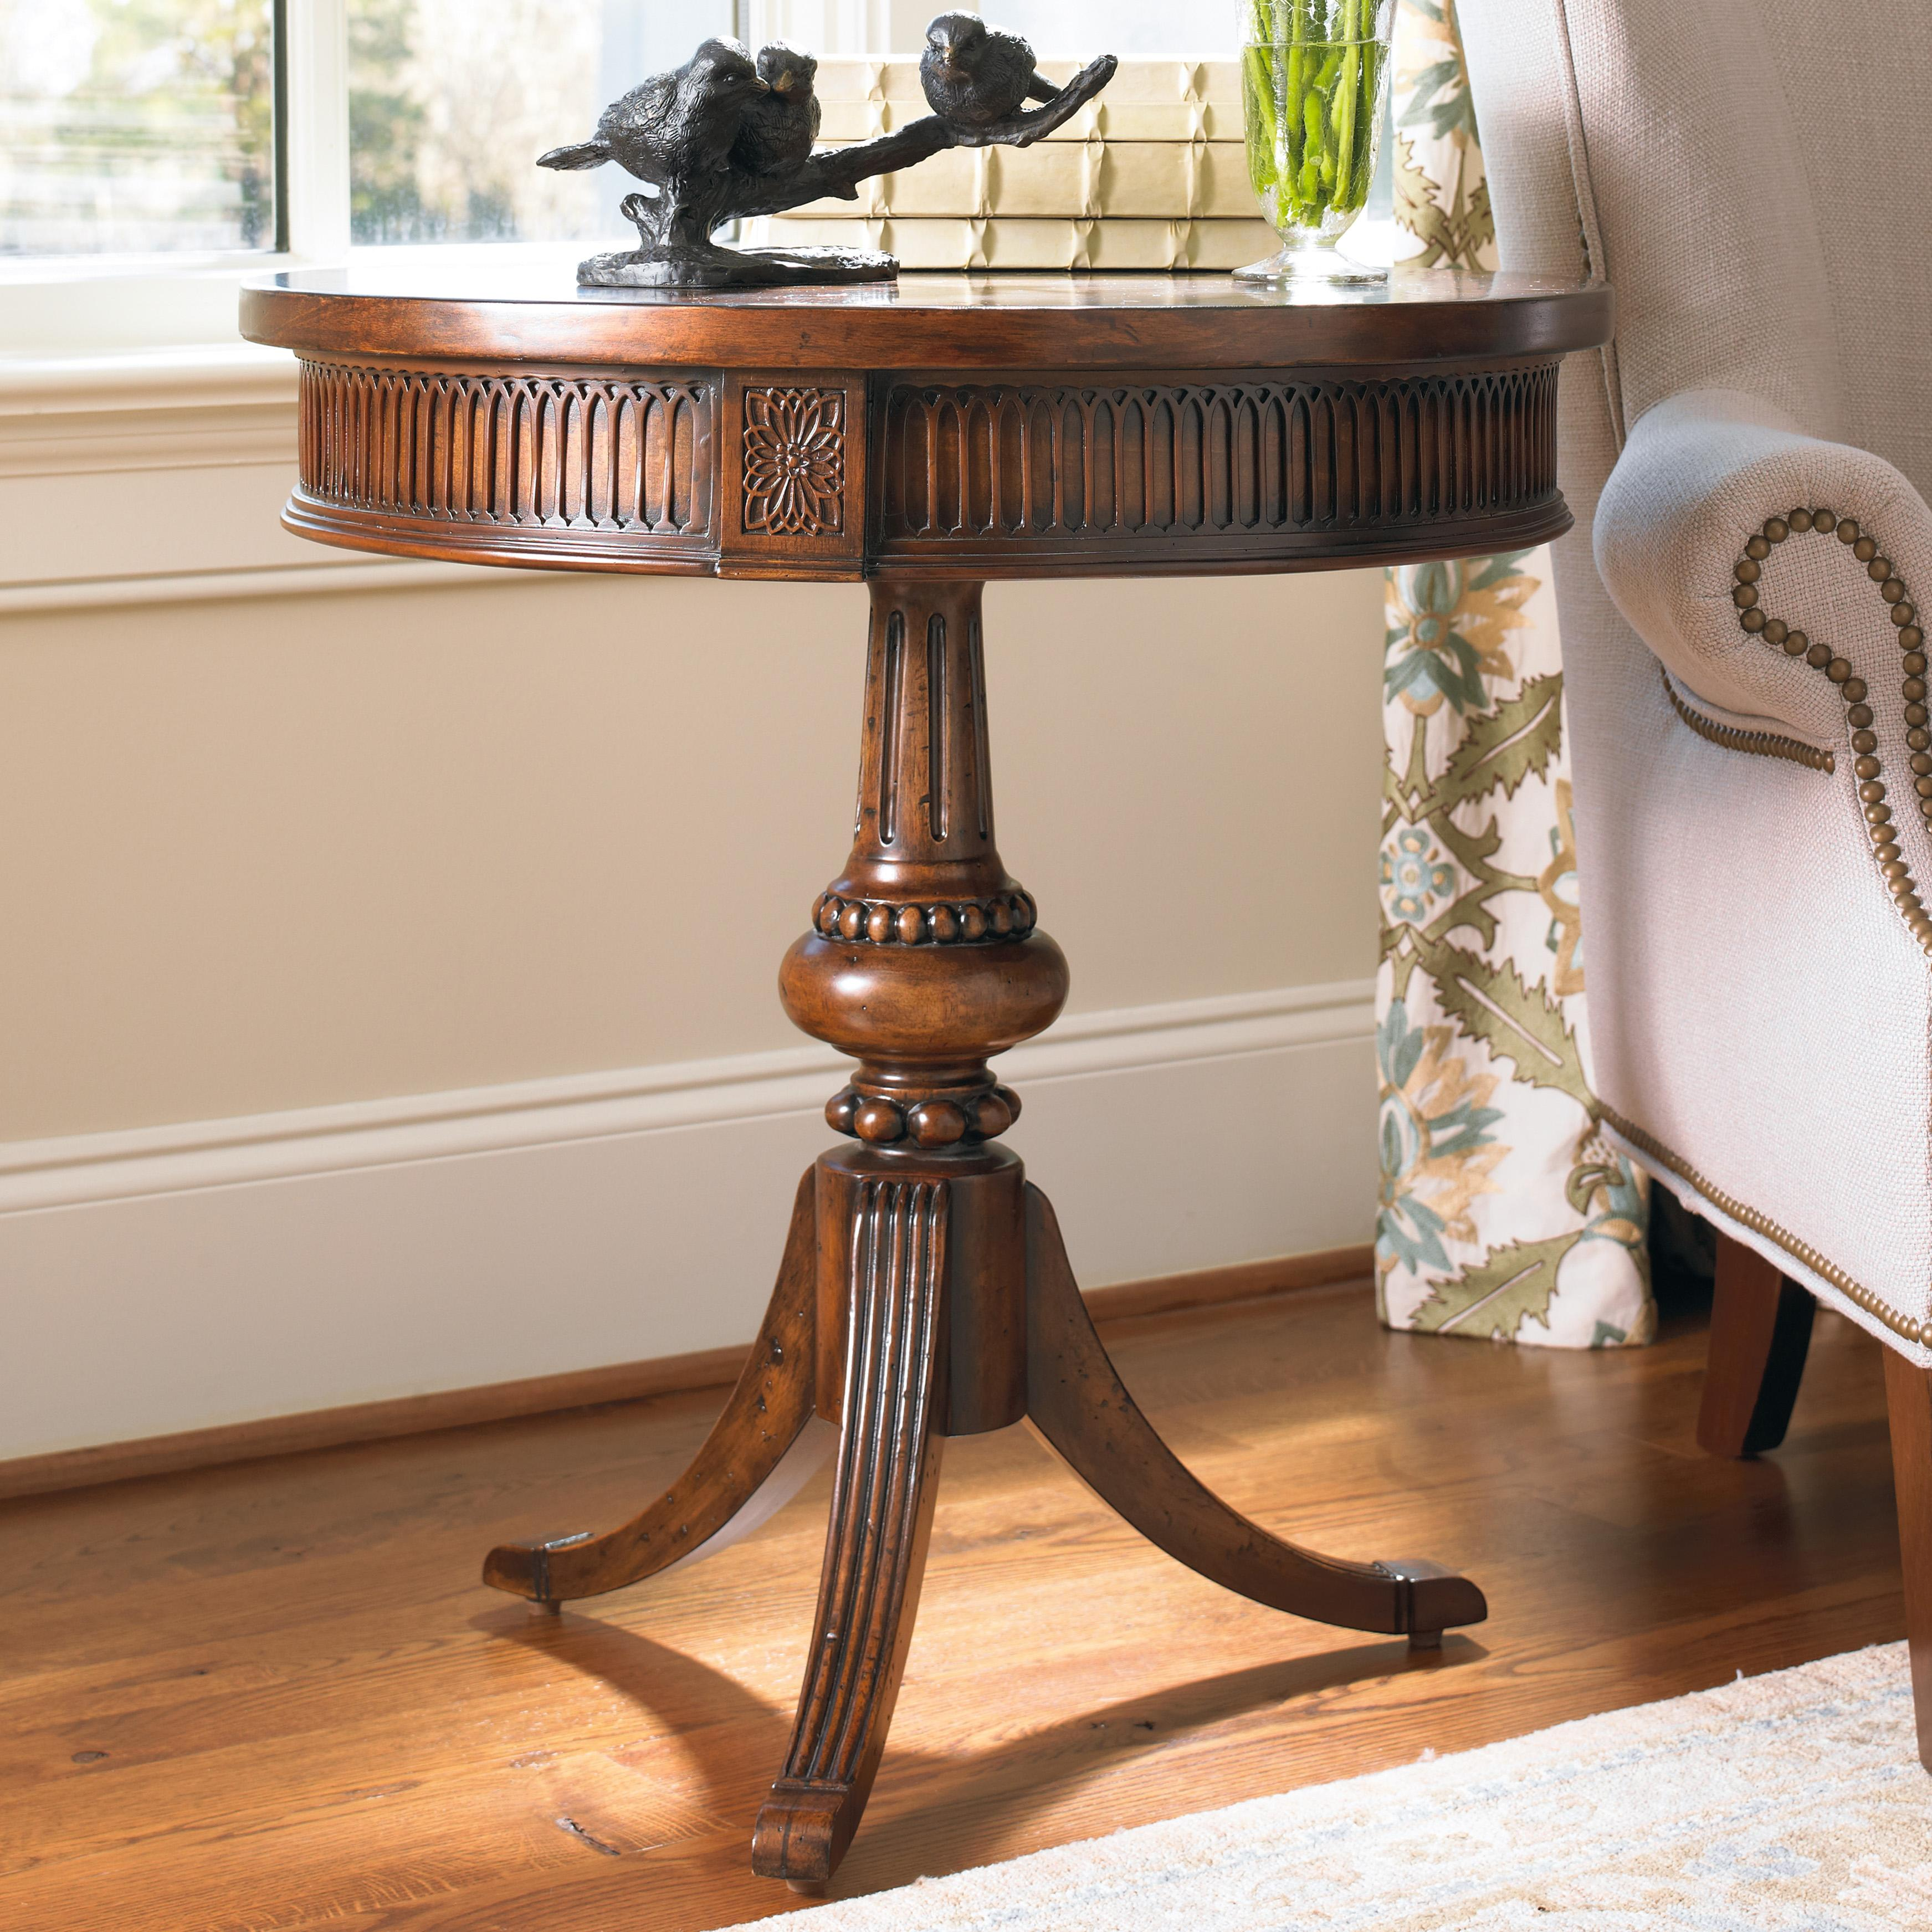 hamilton home living room accents round accent table with ornate products hooker furniture color pedestal wood threshold fretwork pads door chest glass stacking coffee tables